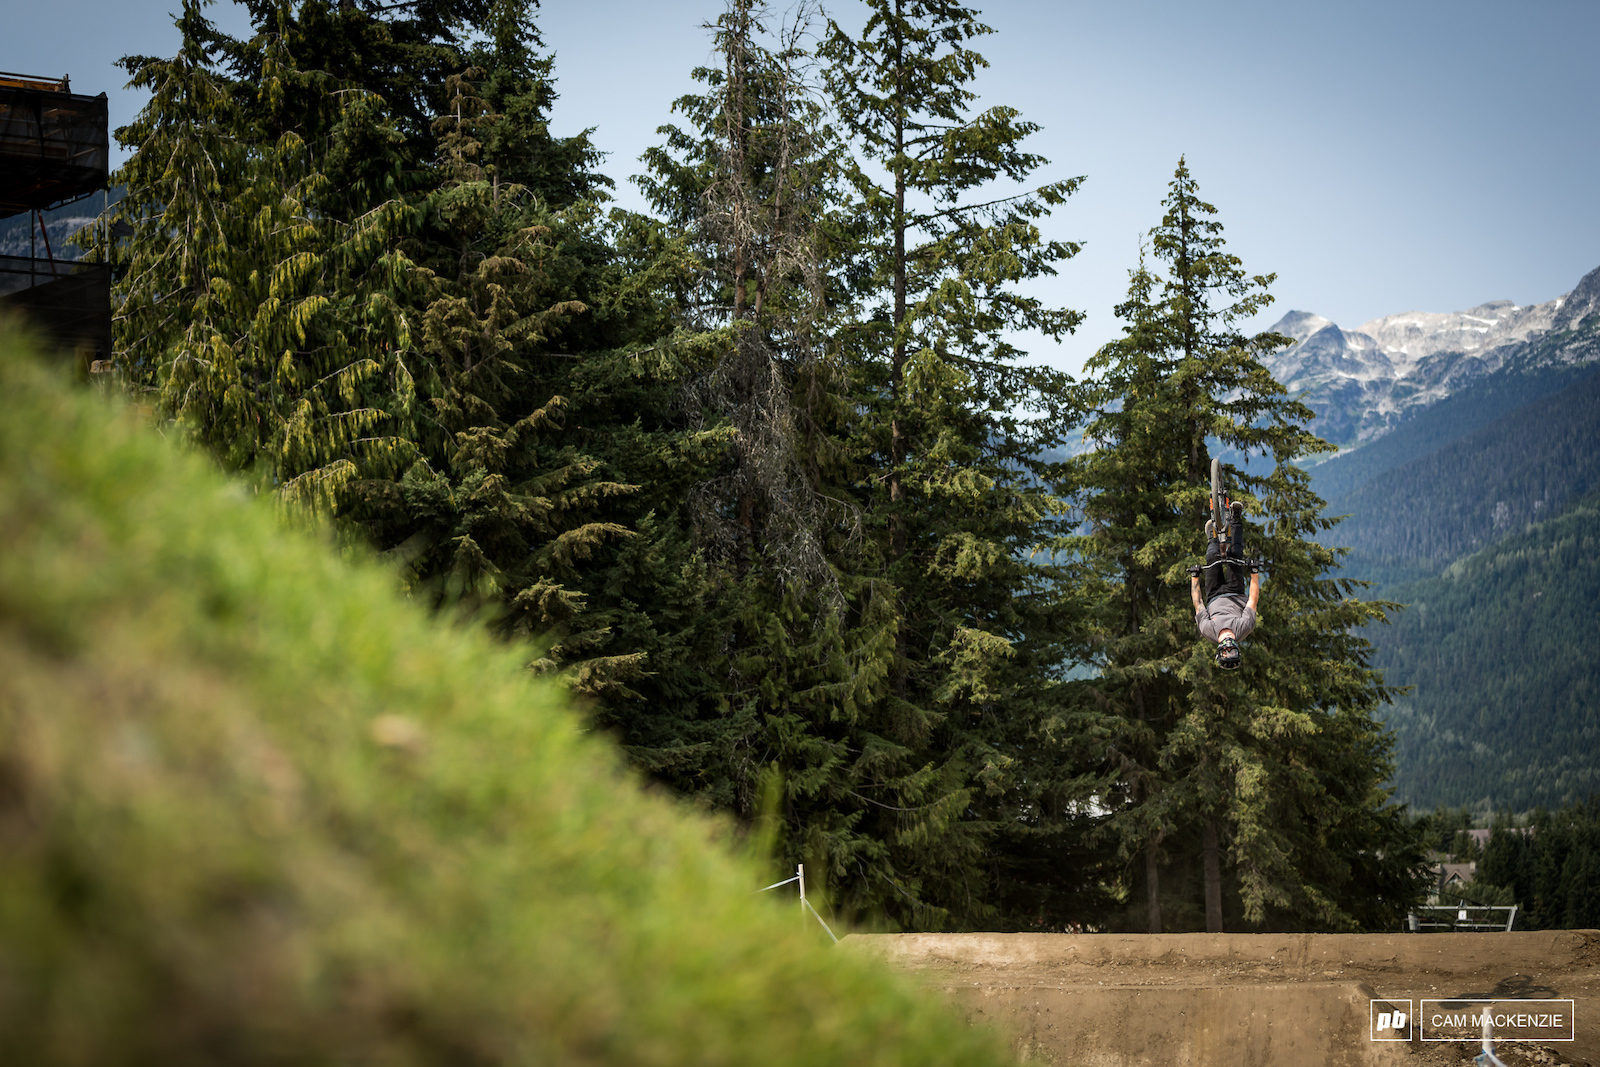 Tom van Steenbergen floating a casual backflip during the early stages of training